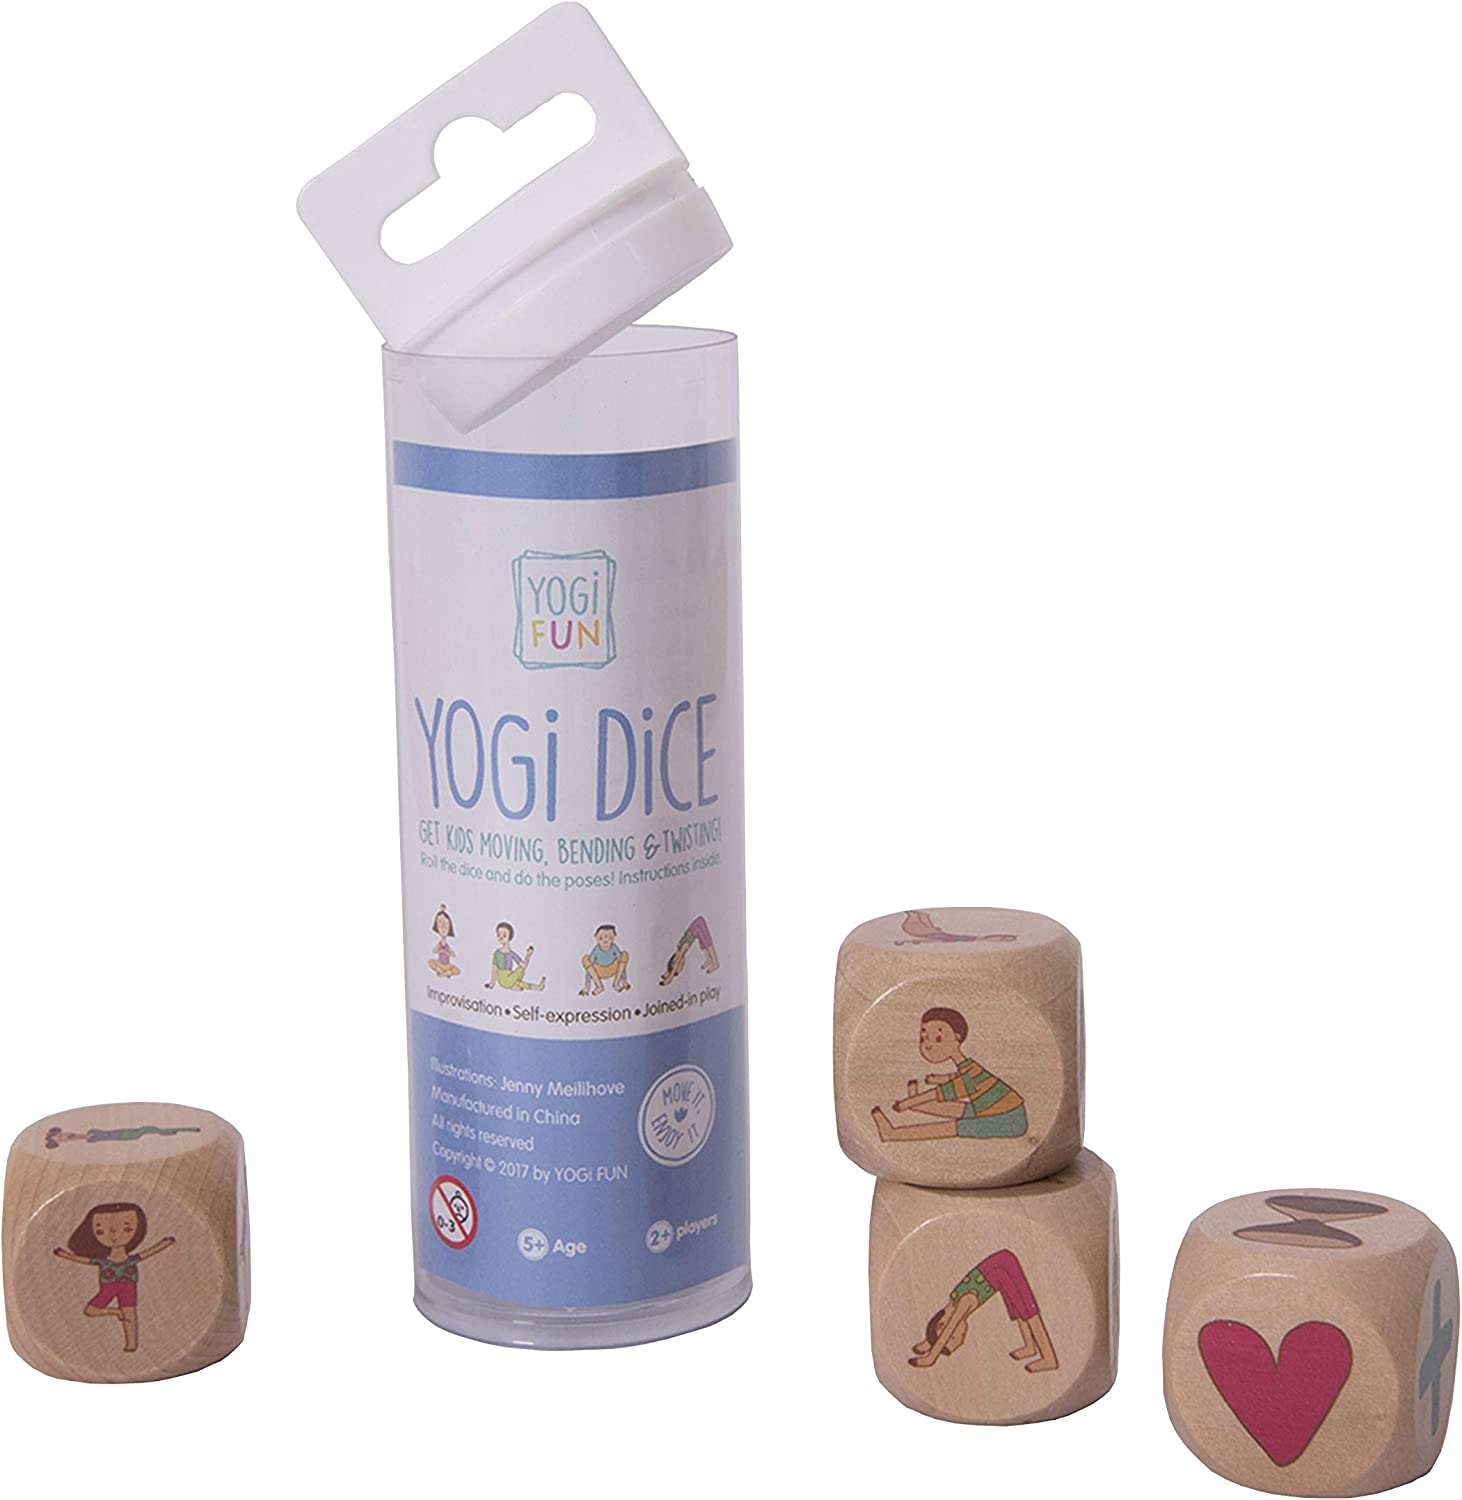 YOGi FUN Kids Yoga dice Game gets Children, Boys and Girls, Moving, Bending and Twisting